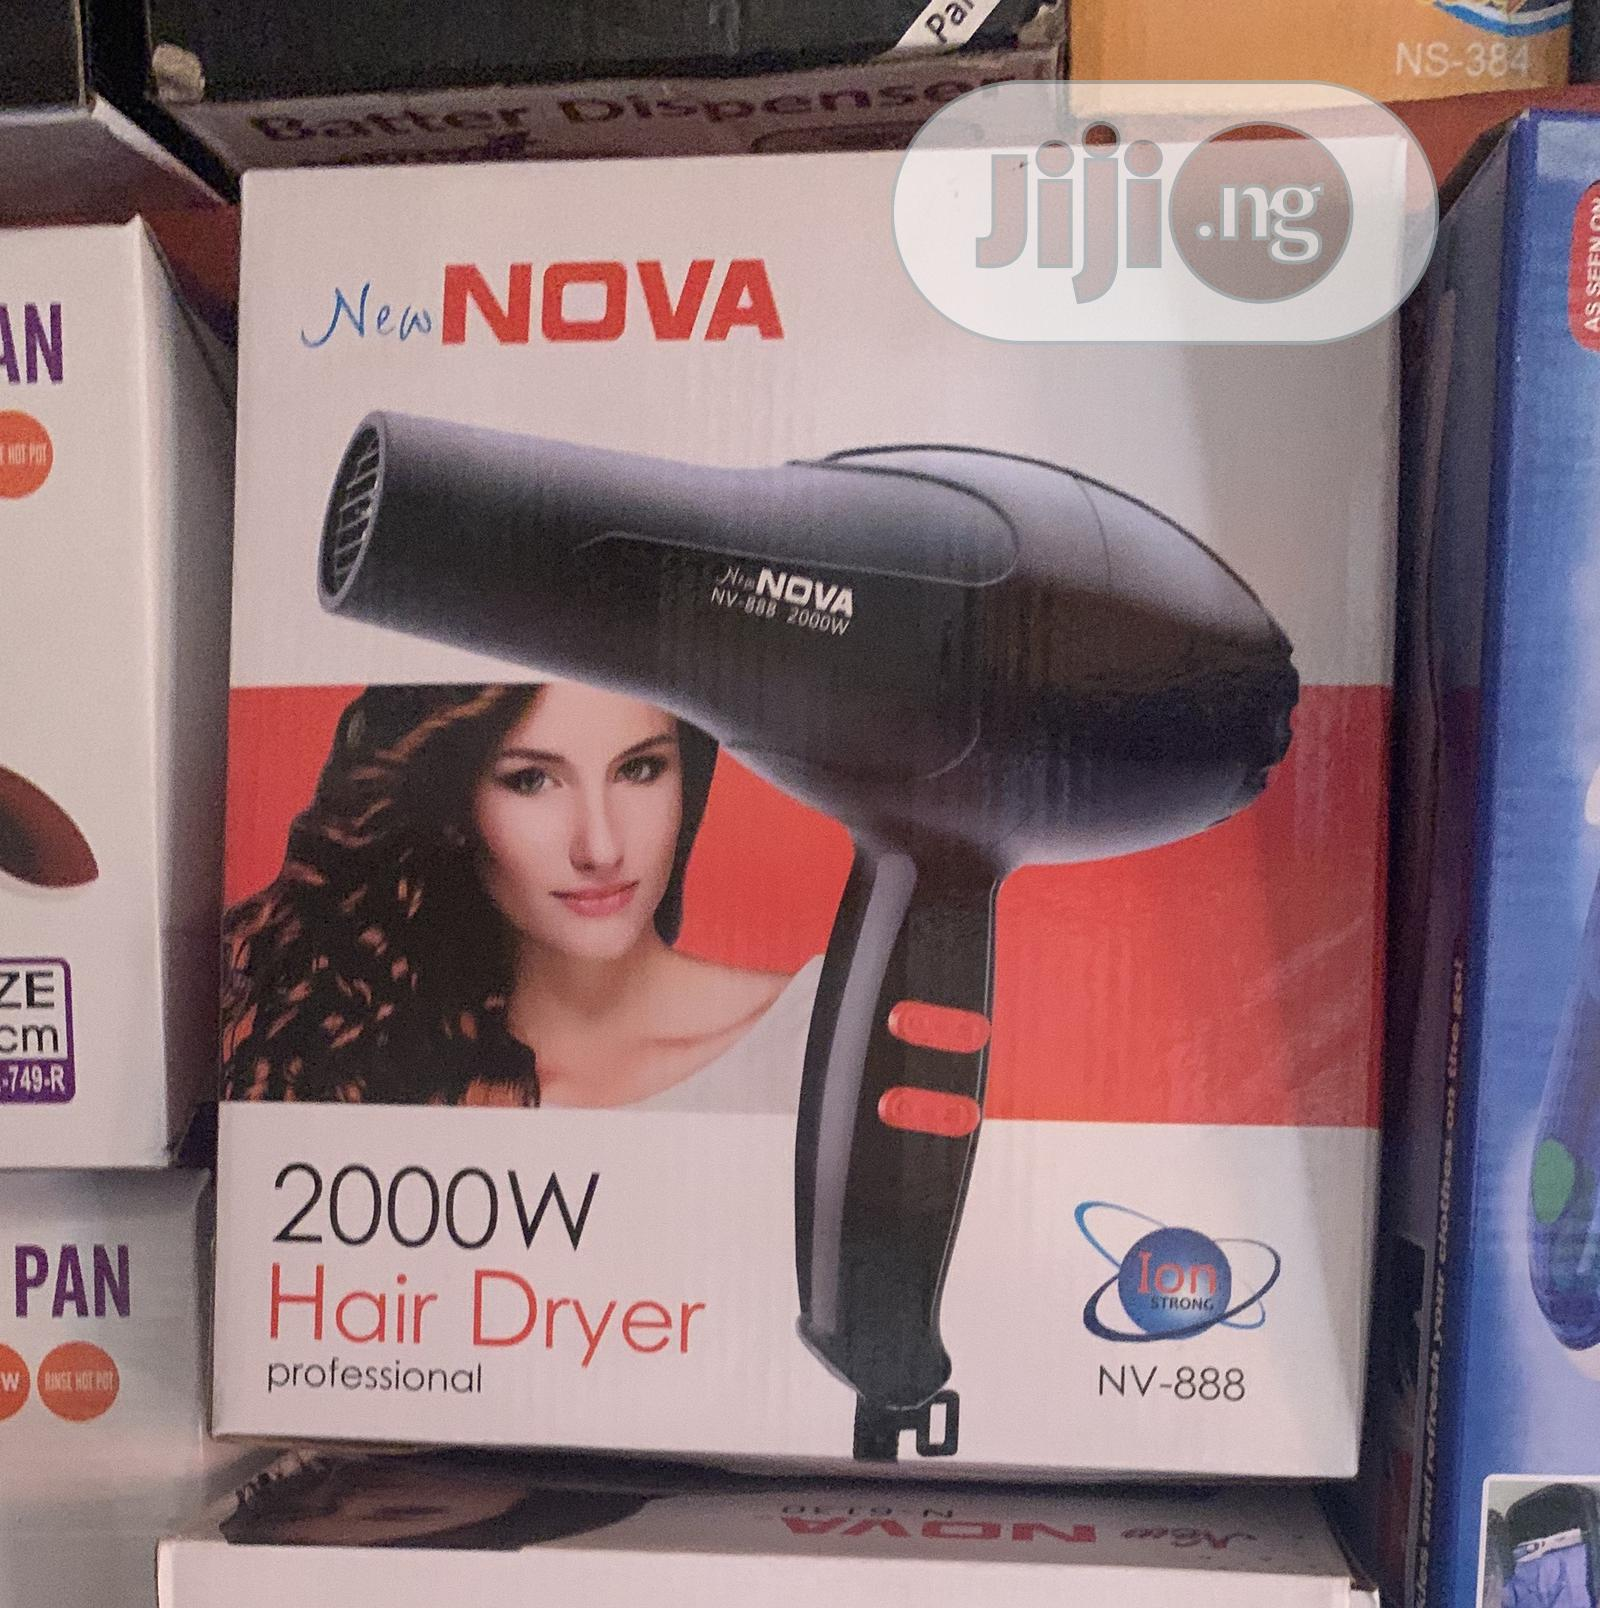 New Nova Dryer